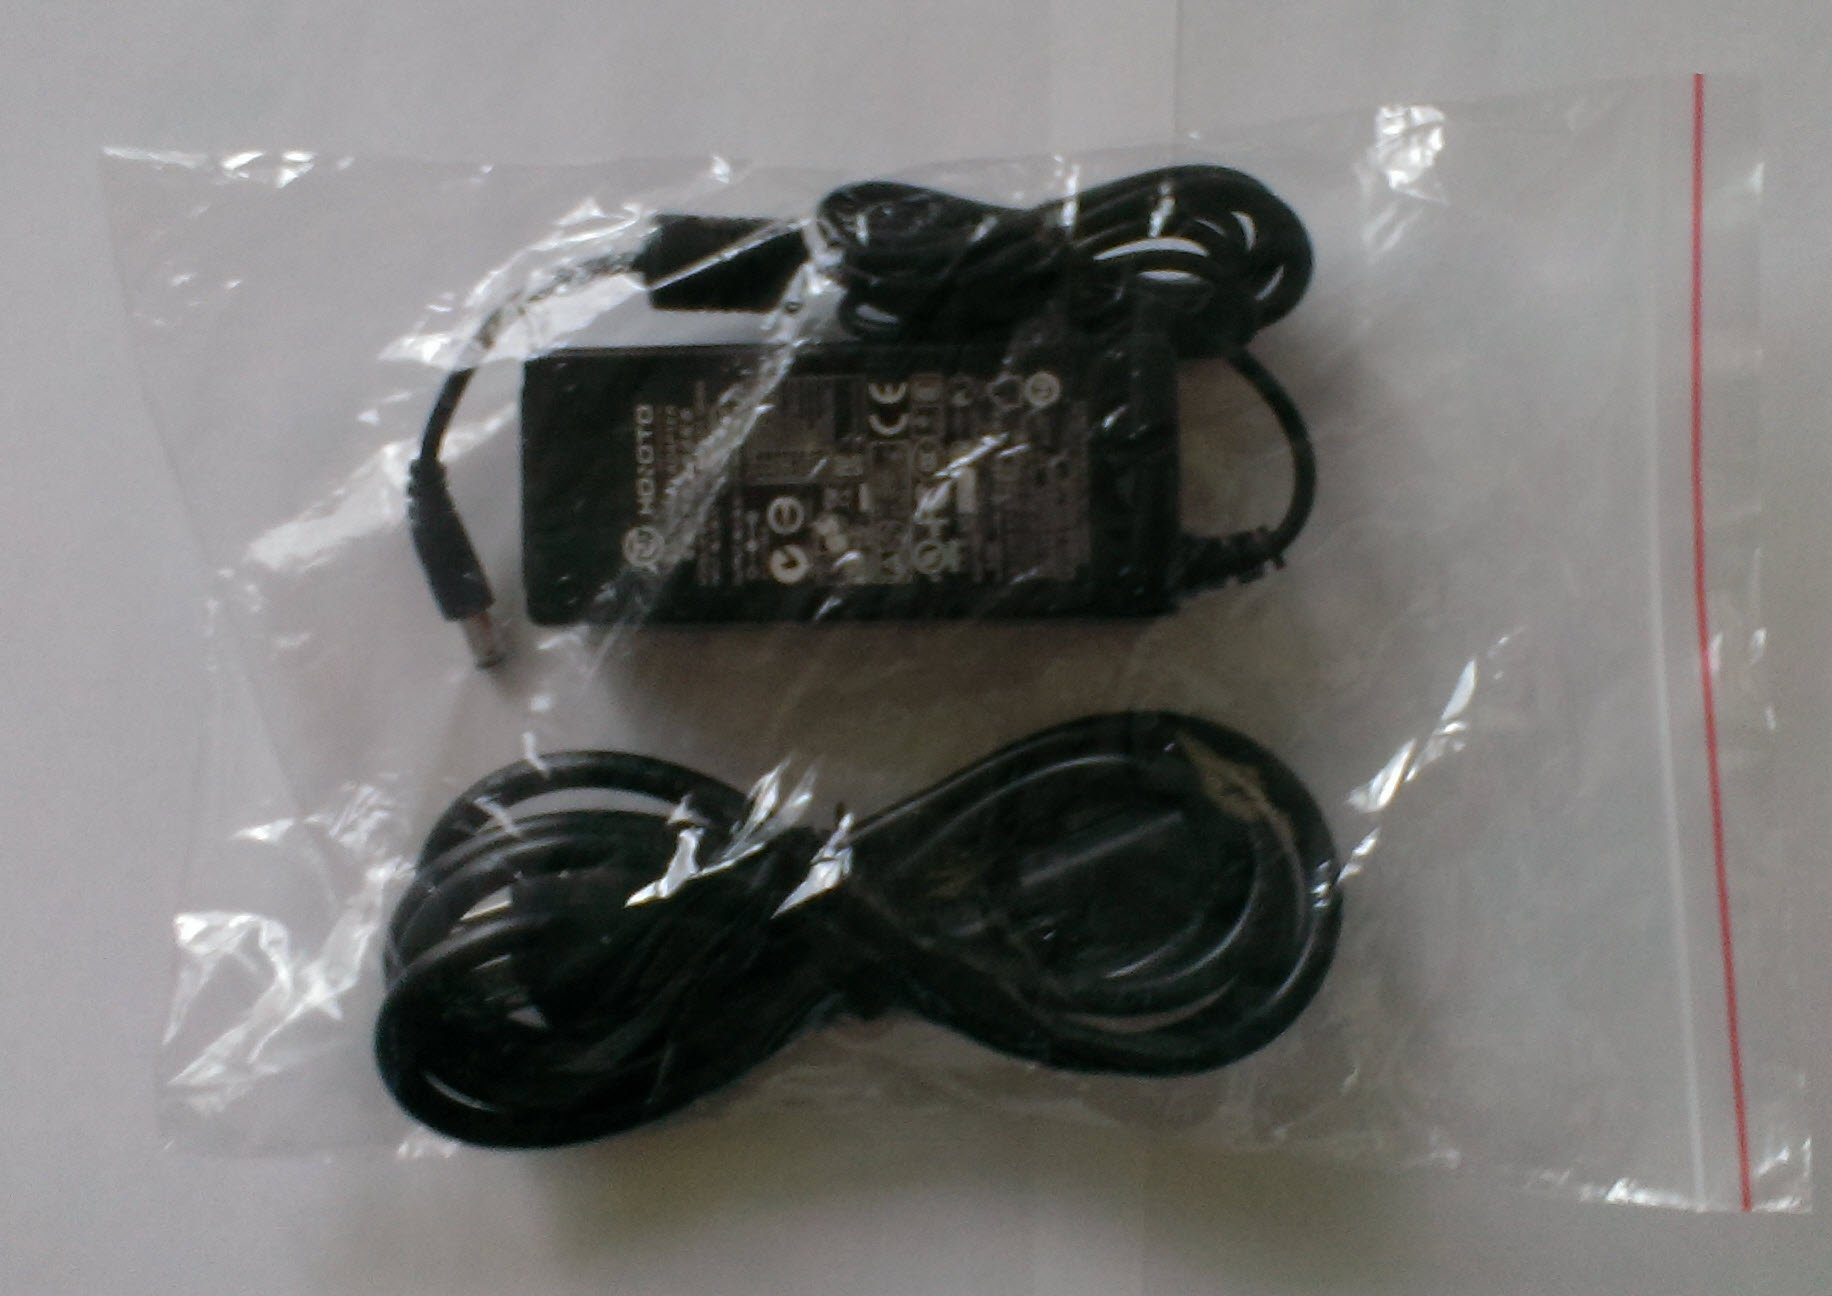 Yiynova Power Adapter for 15/19/22 Inch Tablet Monitors by The Panda City (Image #1)